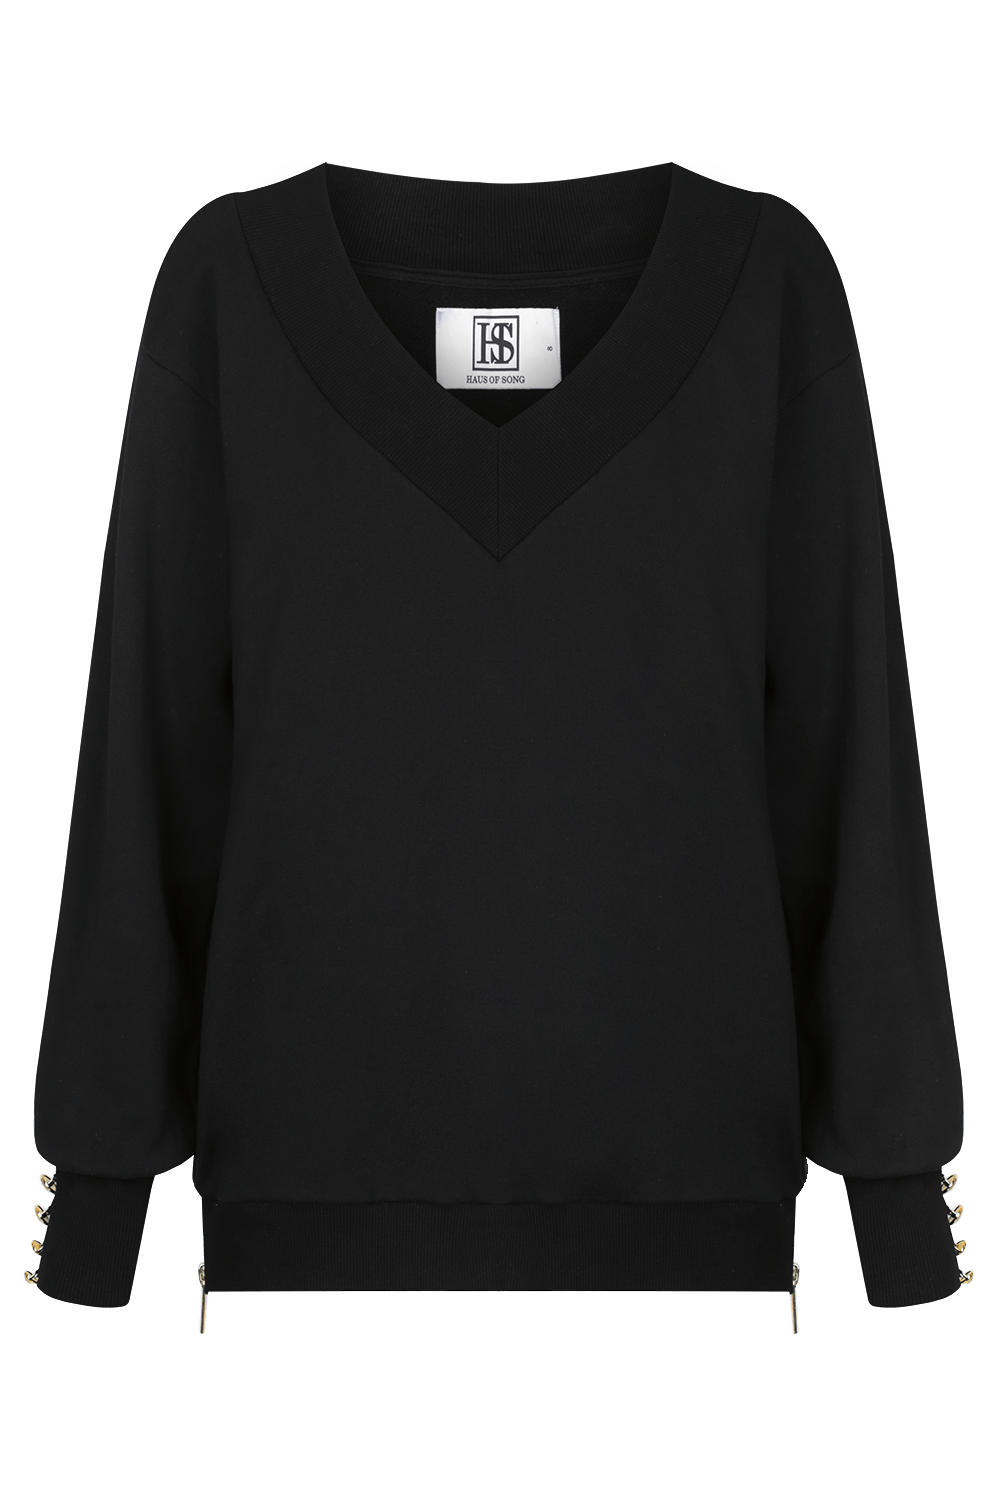 OPEN SIGHT Sweatshirt - BLK/GLD | HAUS OF SONG